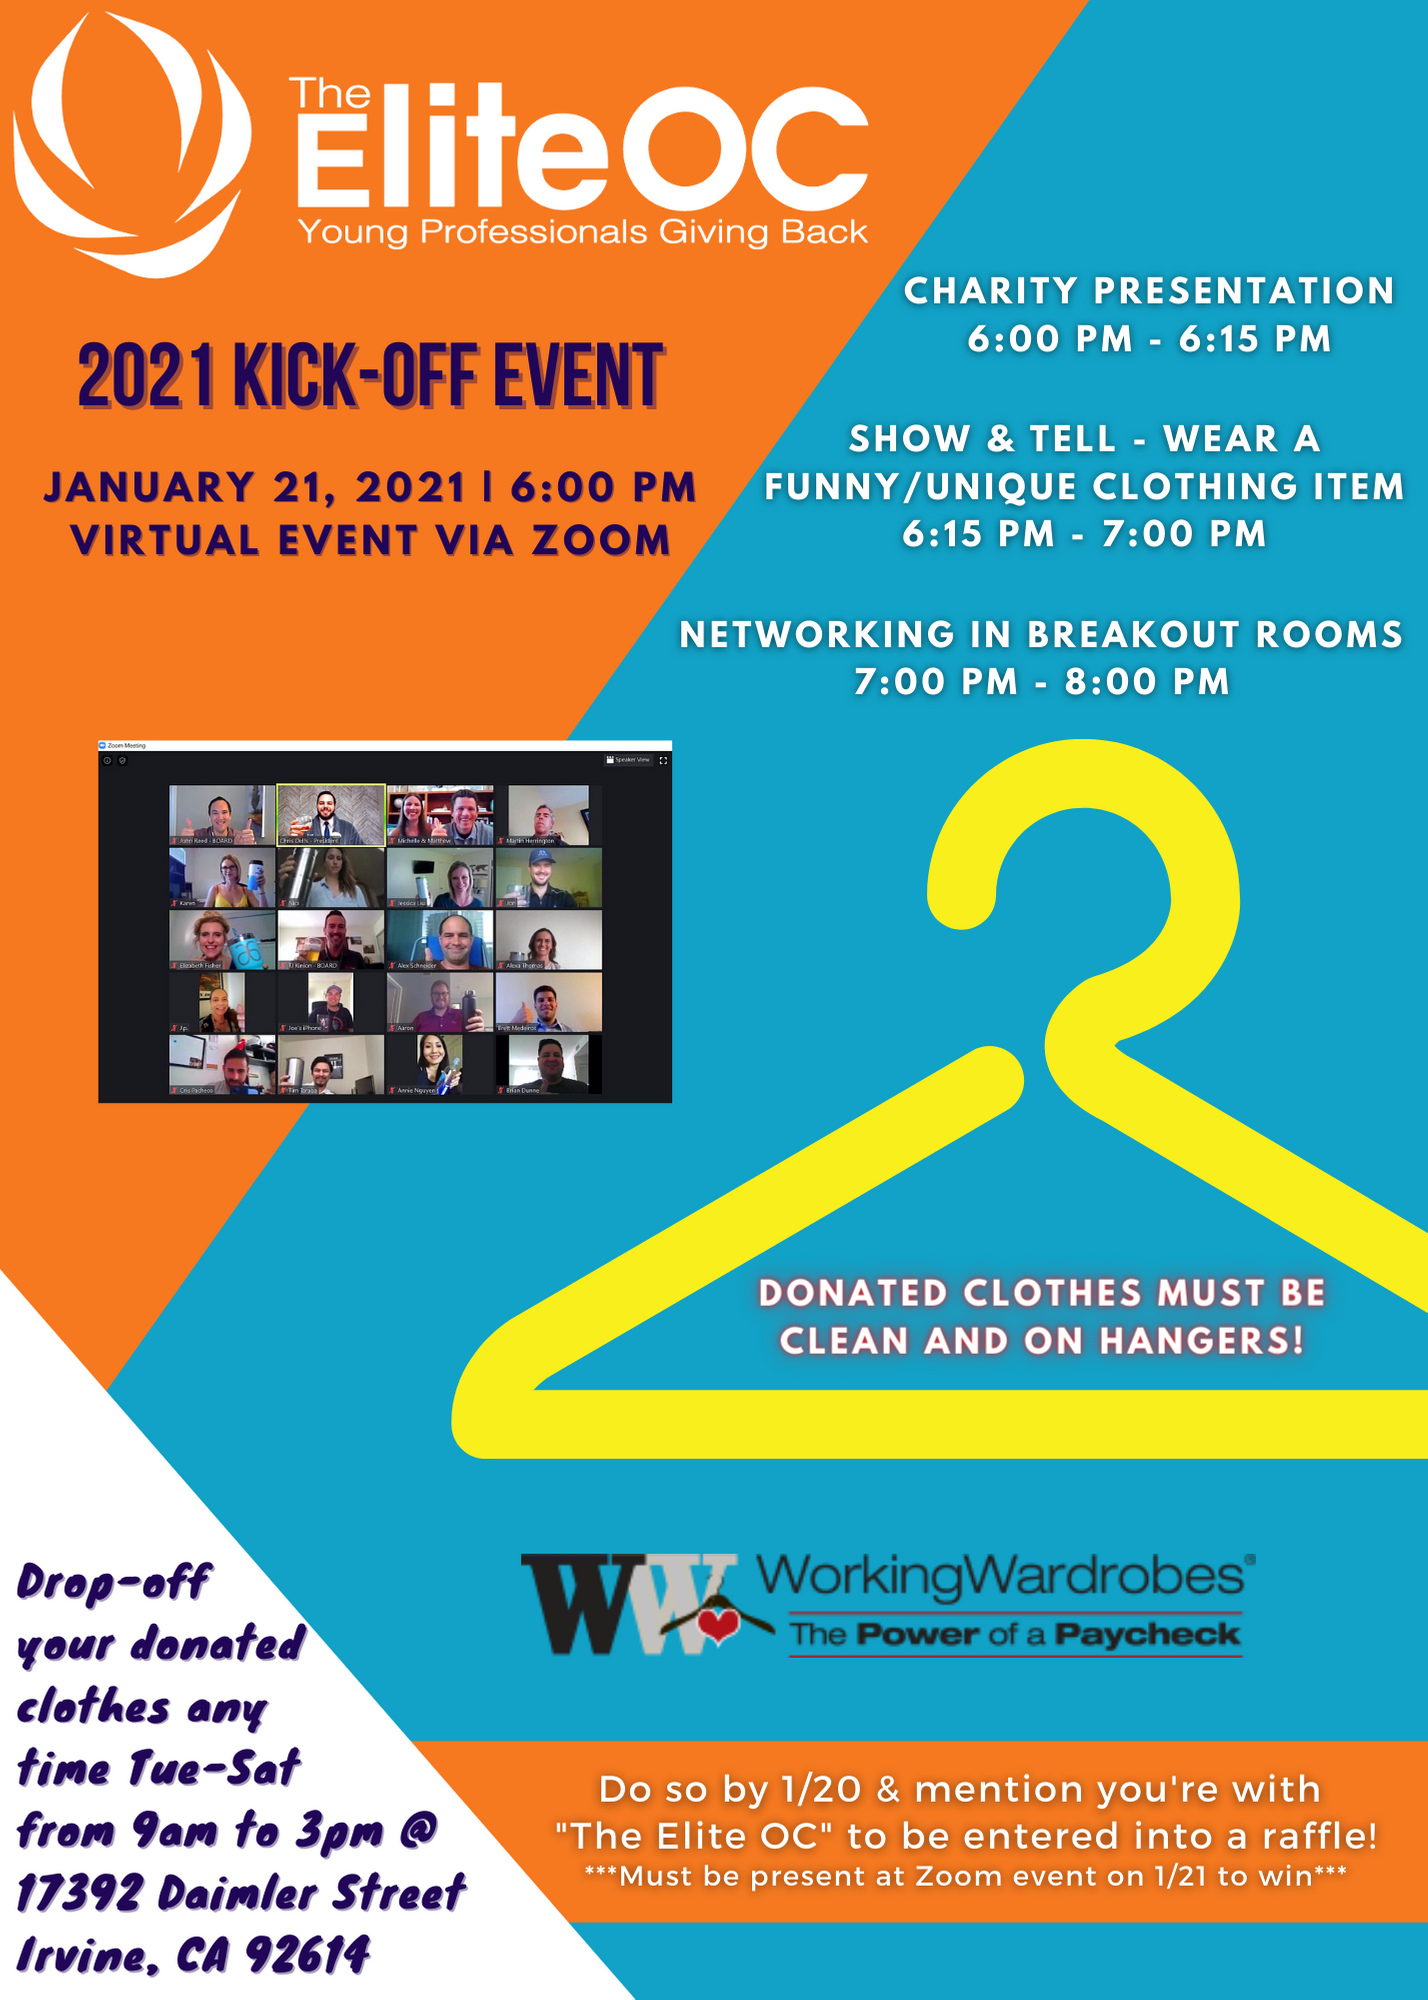 Annual Kick-Off Event 2021